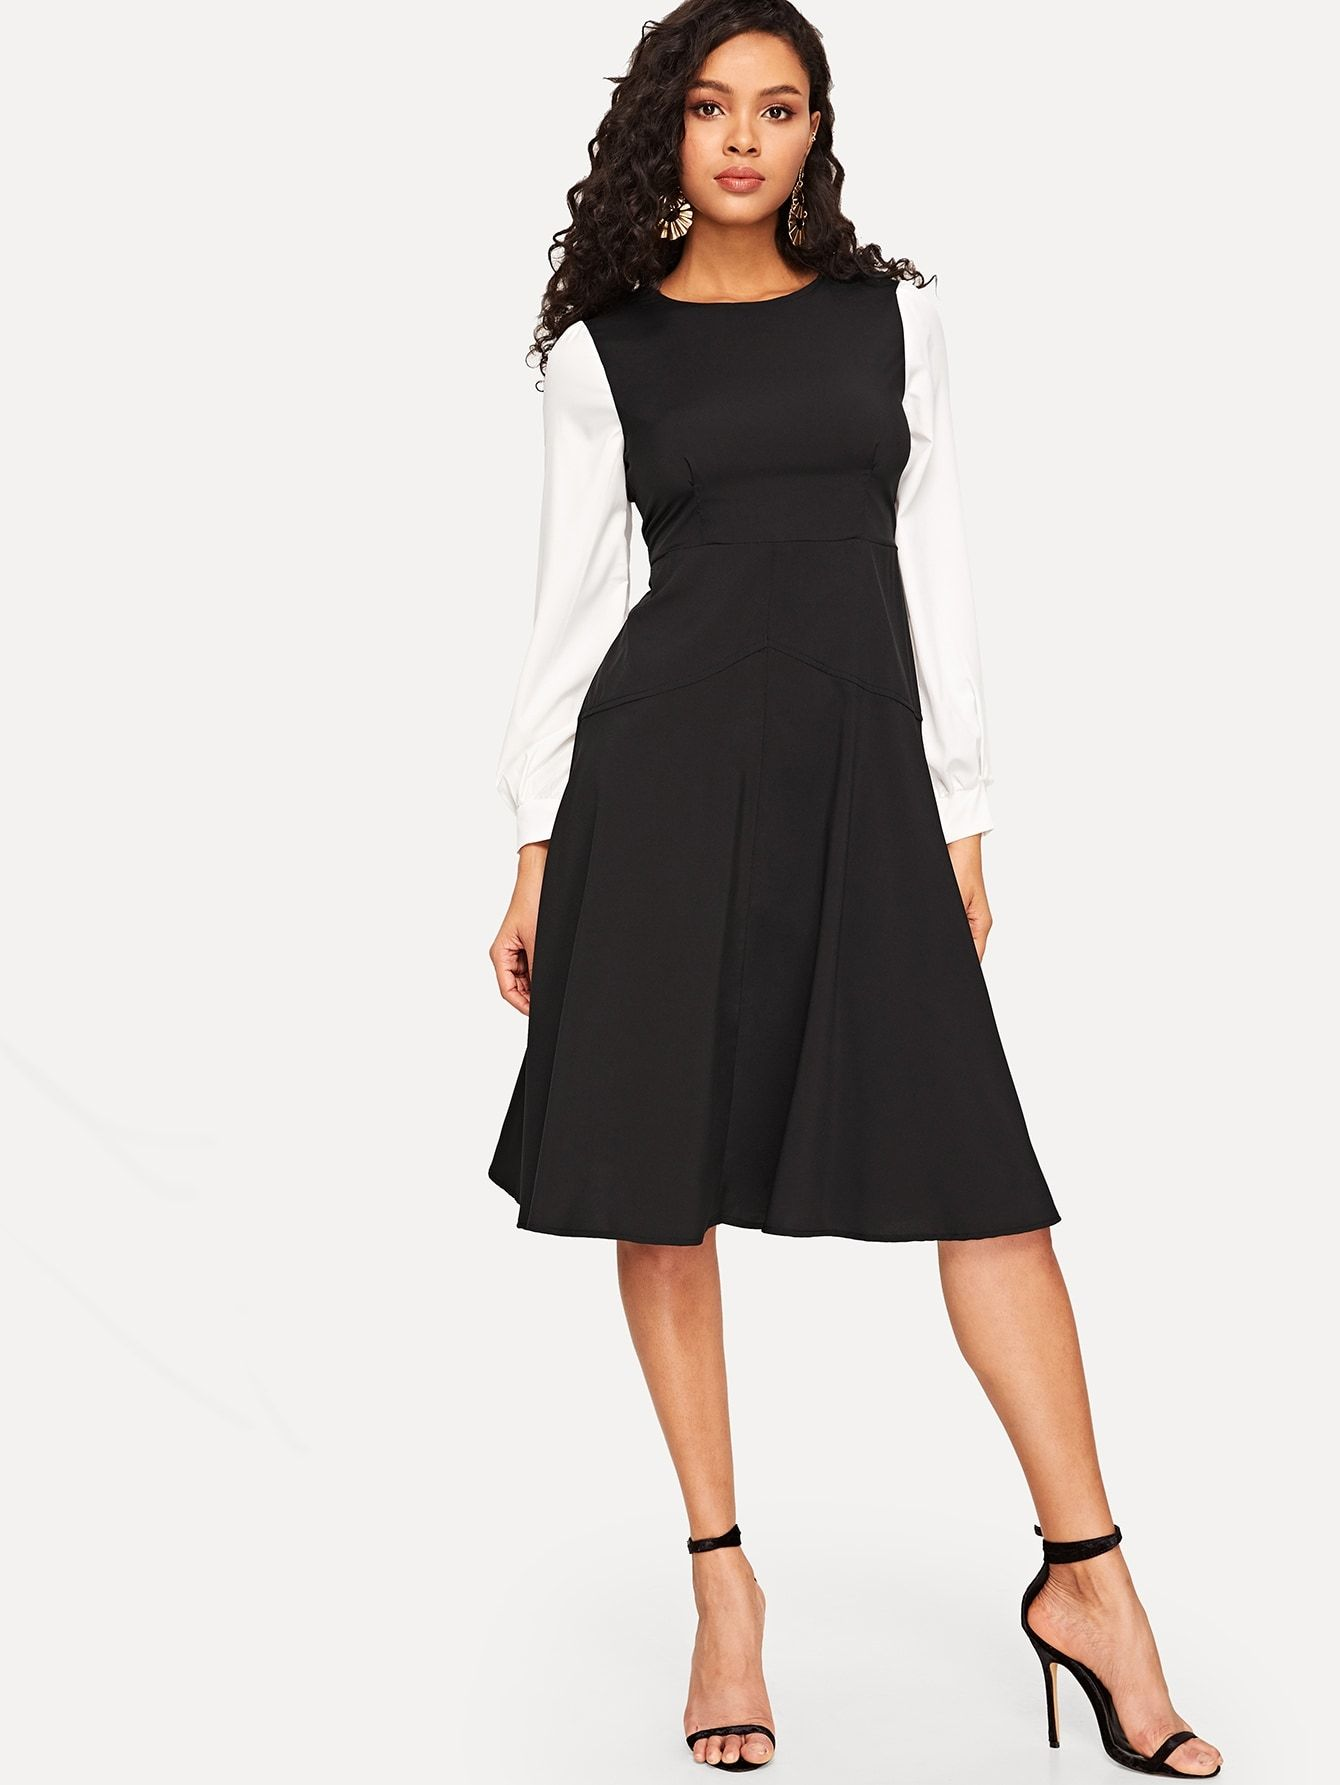 Contrast Sleeve Fit Fit Flare Dress Flare Dress Fit N Flare Dress